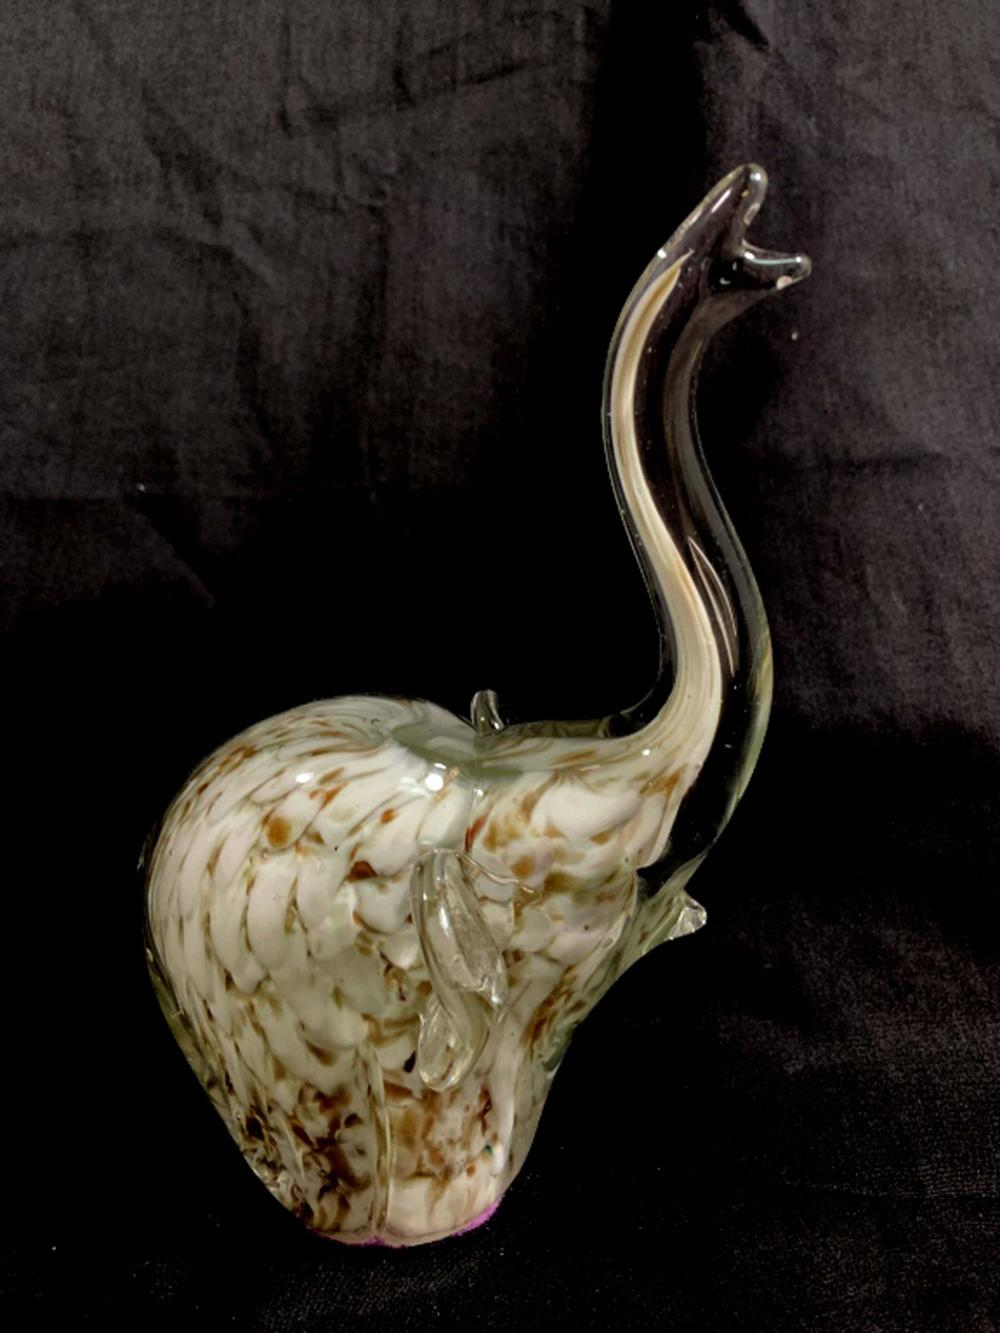 GORGEOUS GOLD INFUSED WHITE ELEPHANT GLASS SCULPTURE